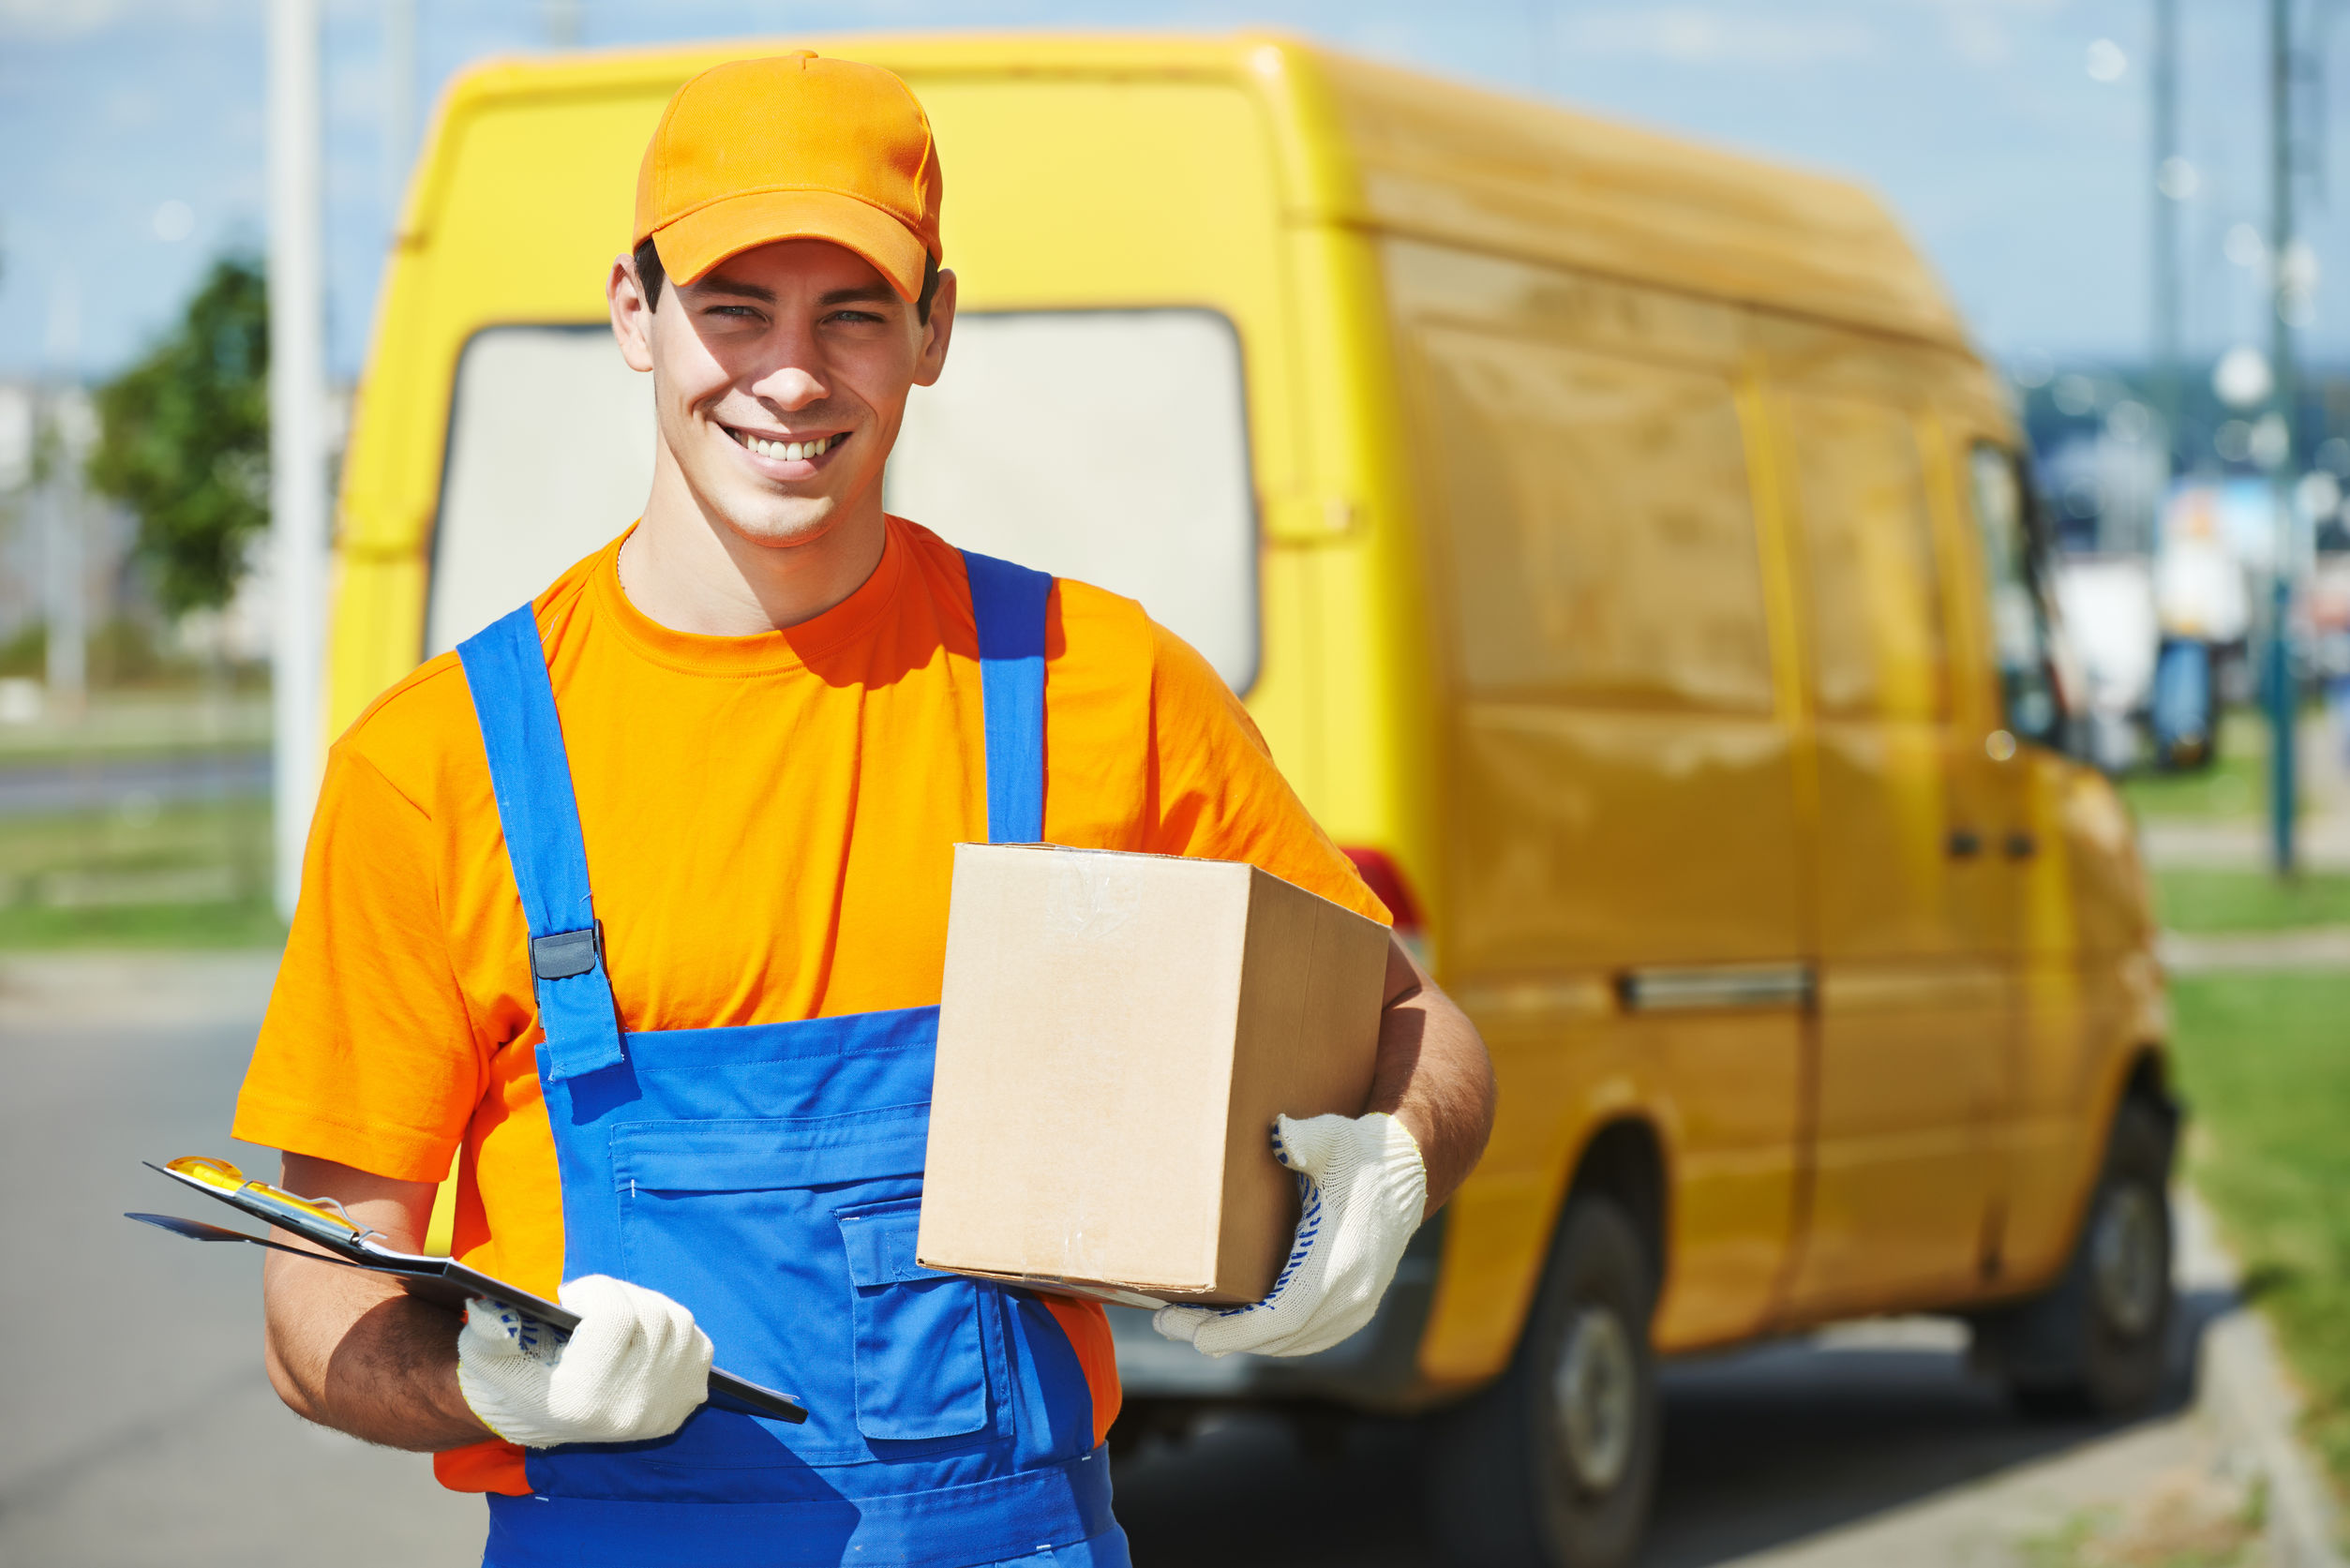 St Maries, ID. Business/Commercial Auto Insurance